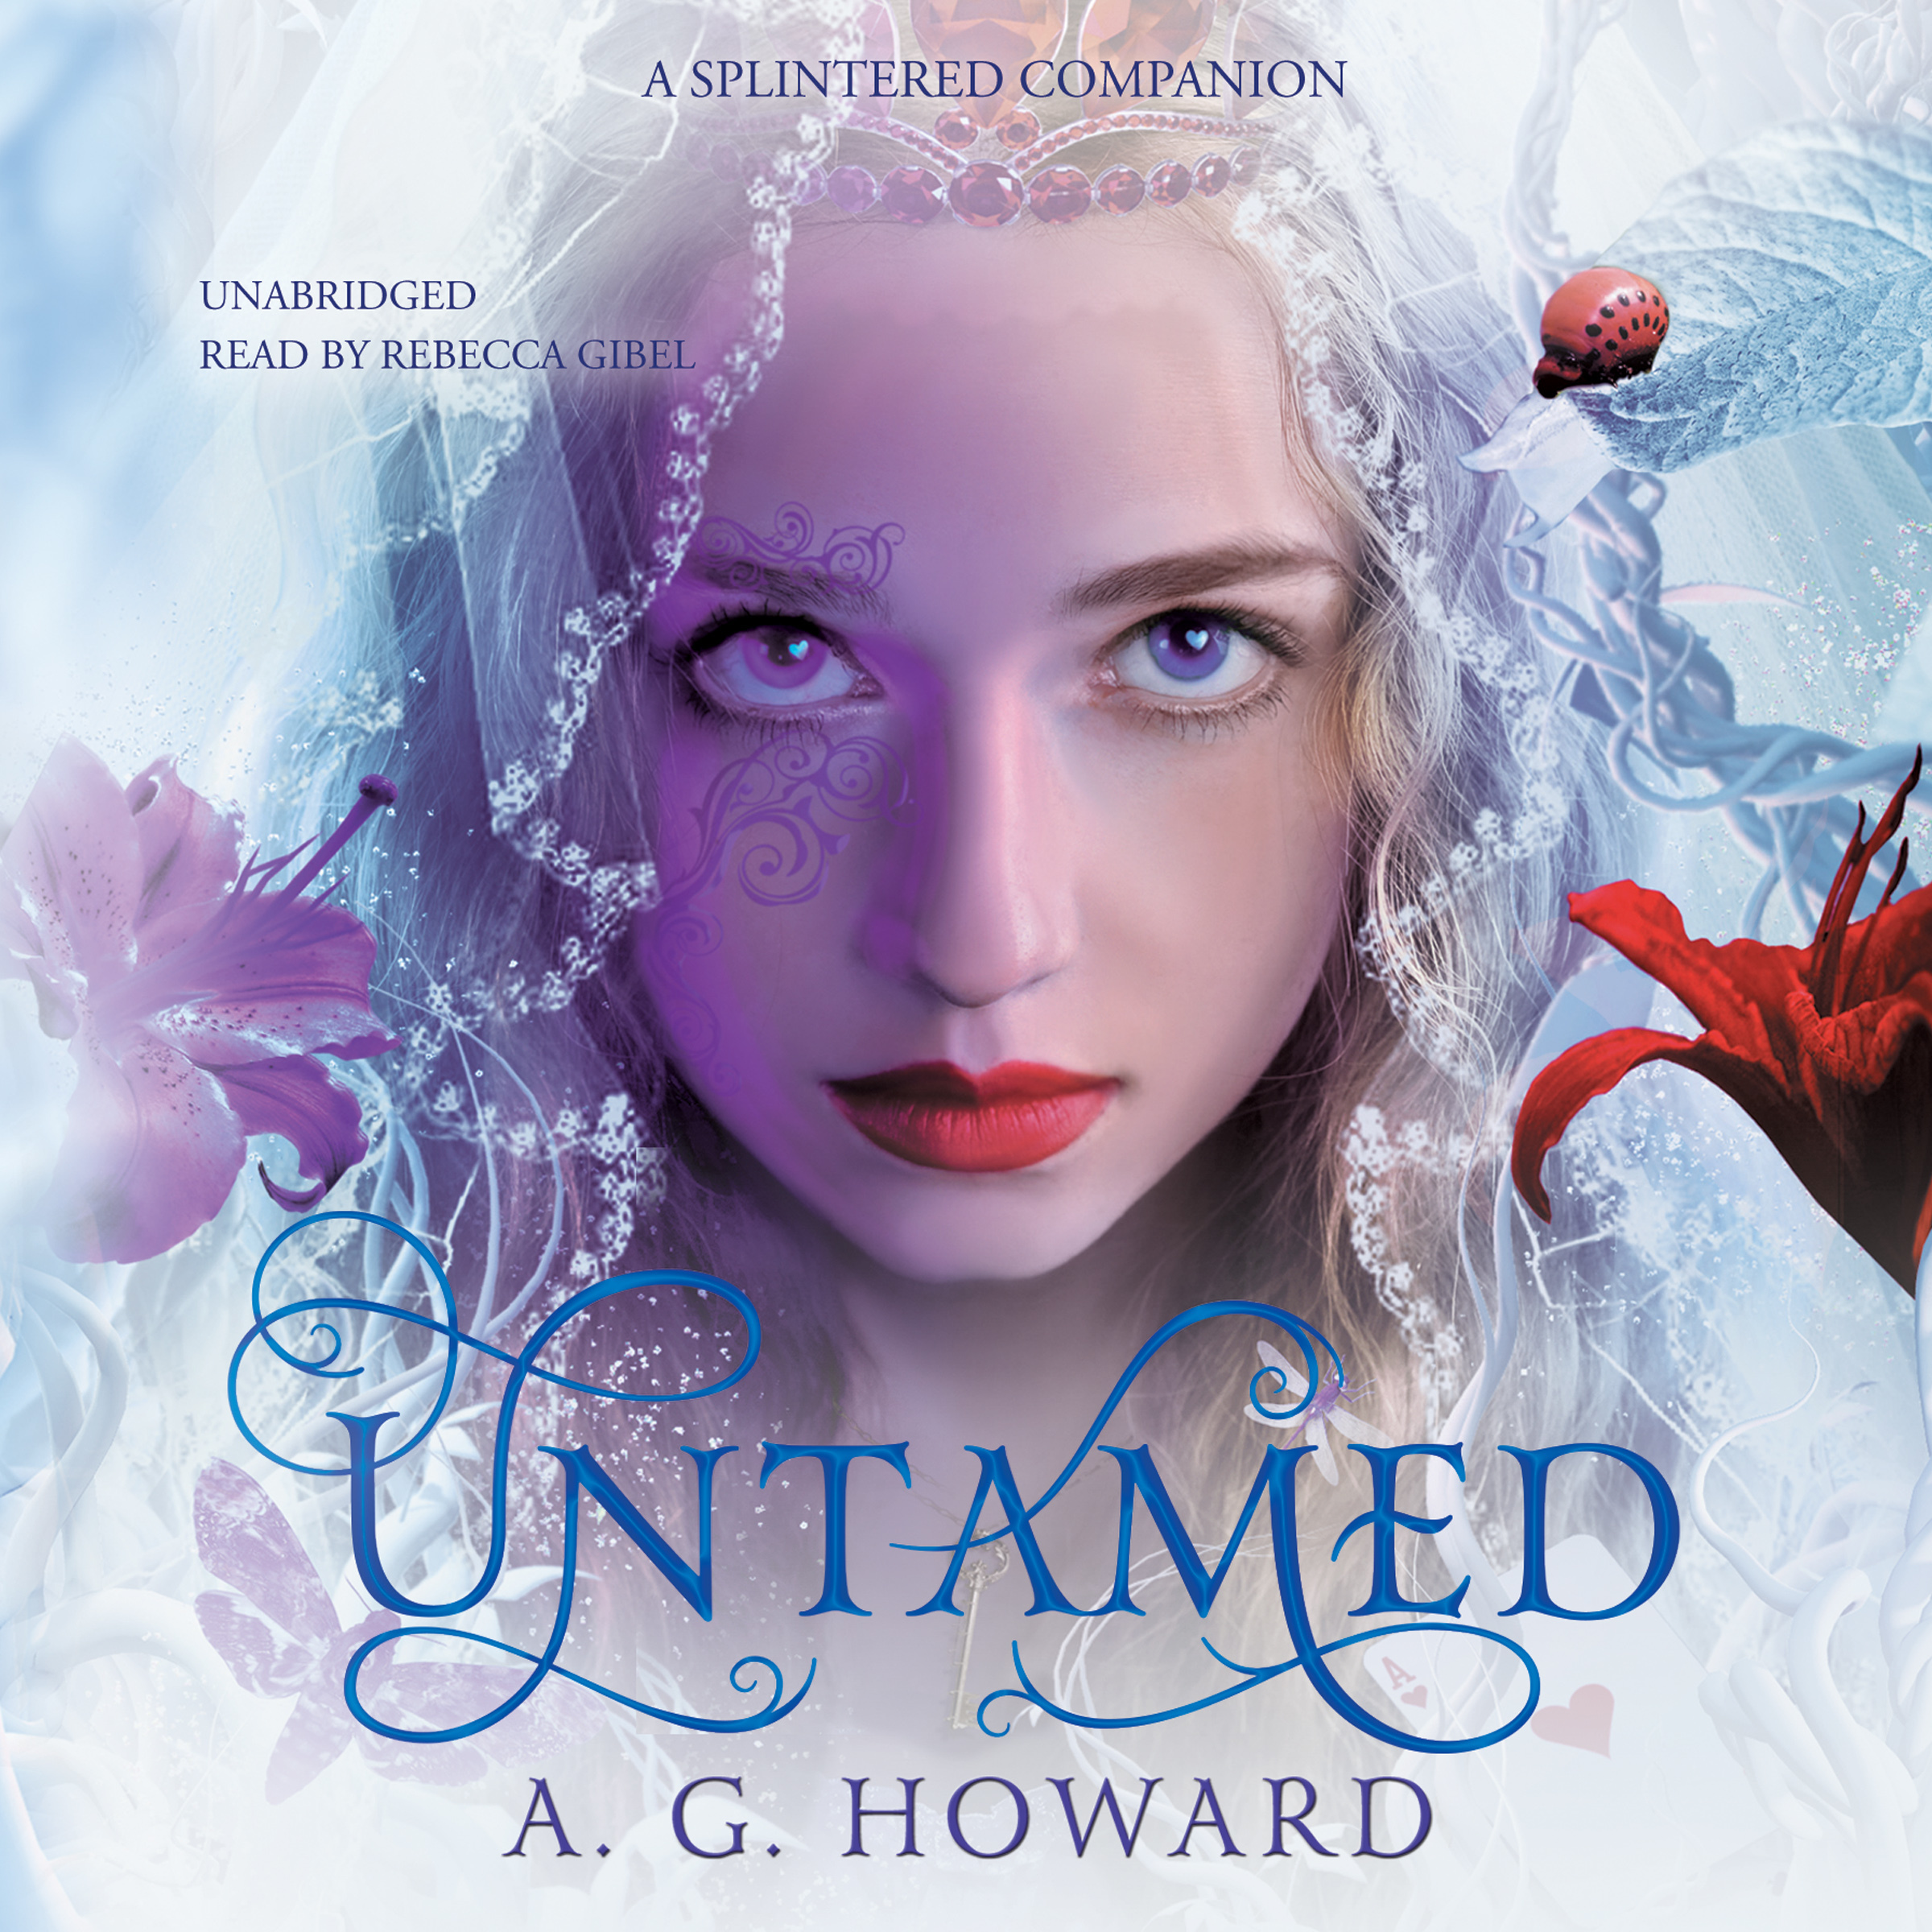 Printable Untamed: A Splintered Companion Audiobook Cover Art